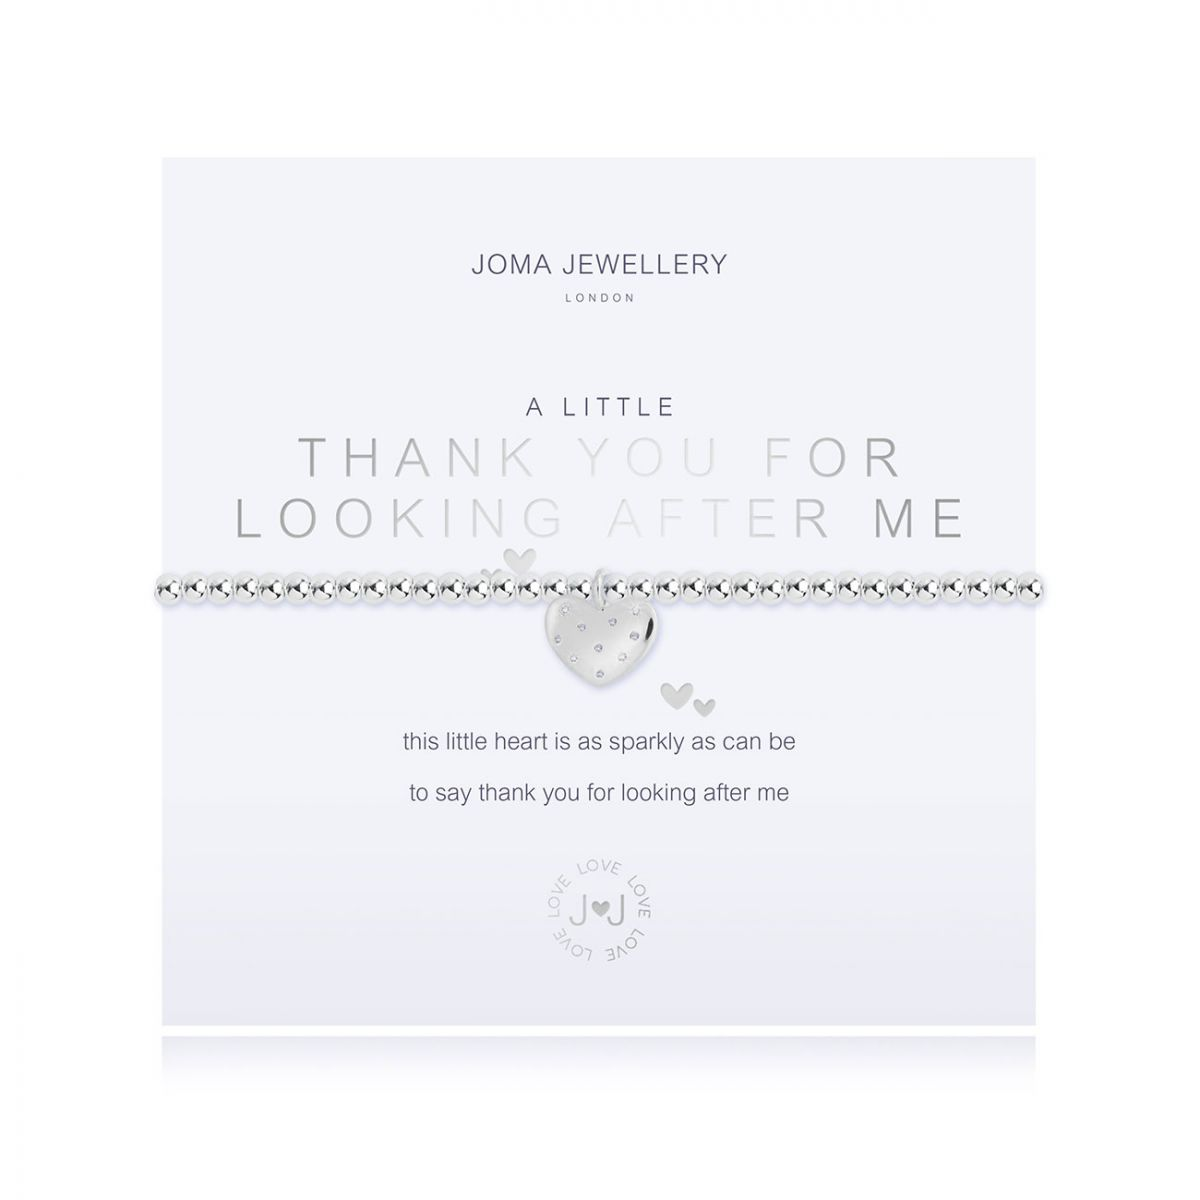 Joma Jewellery 'a little' bracelet with sparkly heart charm, presented on a sentiment card which reads:  'This little heart is as sparkly as can be, to say thank you for looking after me'